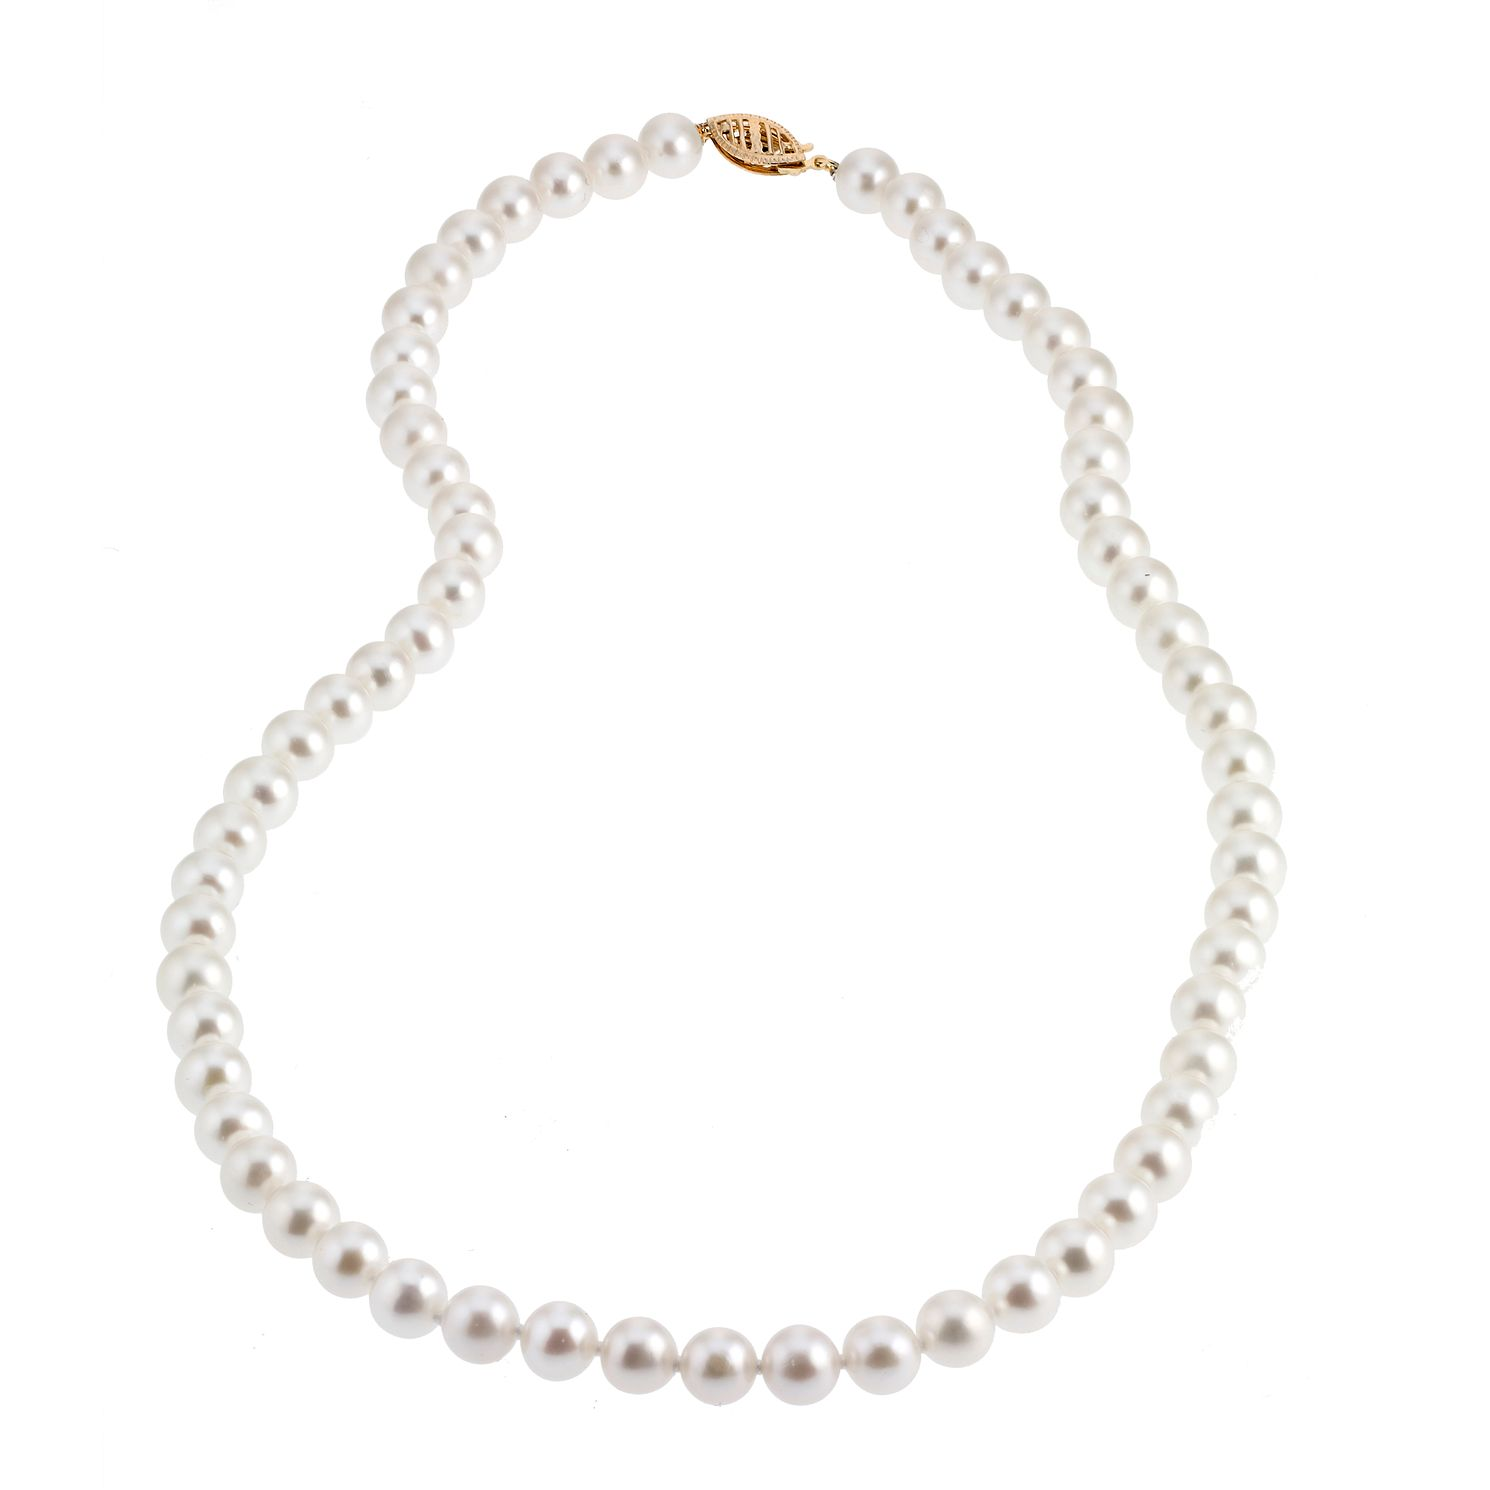 by lotfinder jewelry mikimoto details jewellery nyr cultured lot pearl single strand a necklace